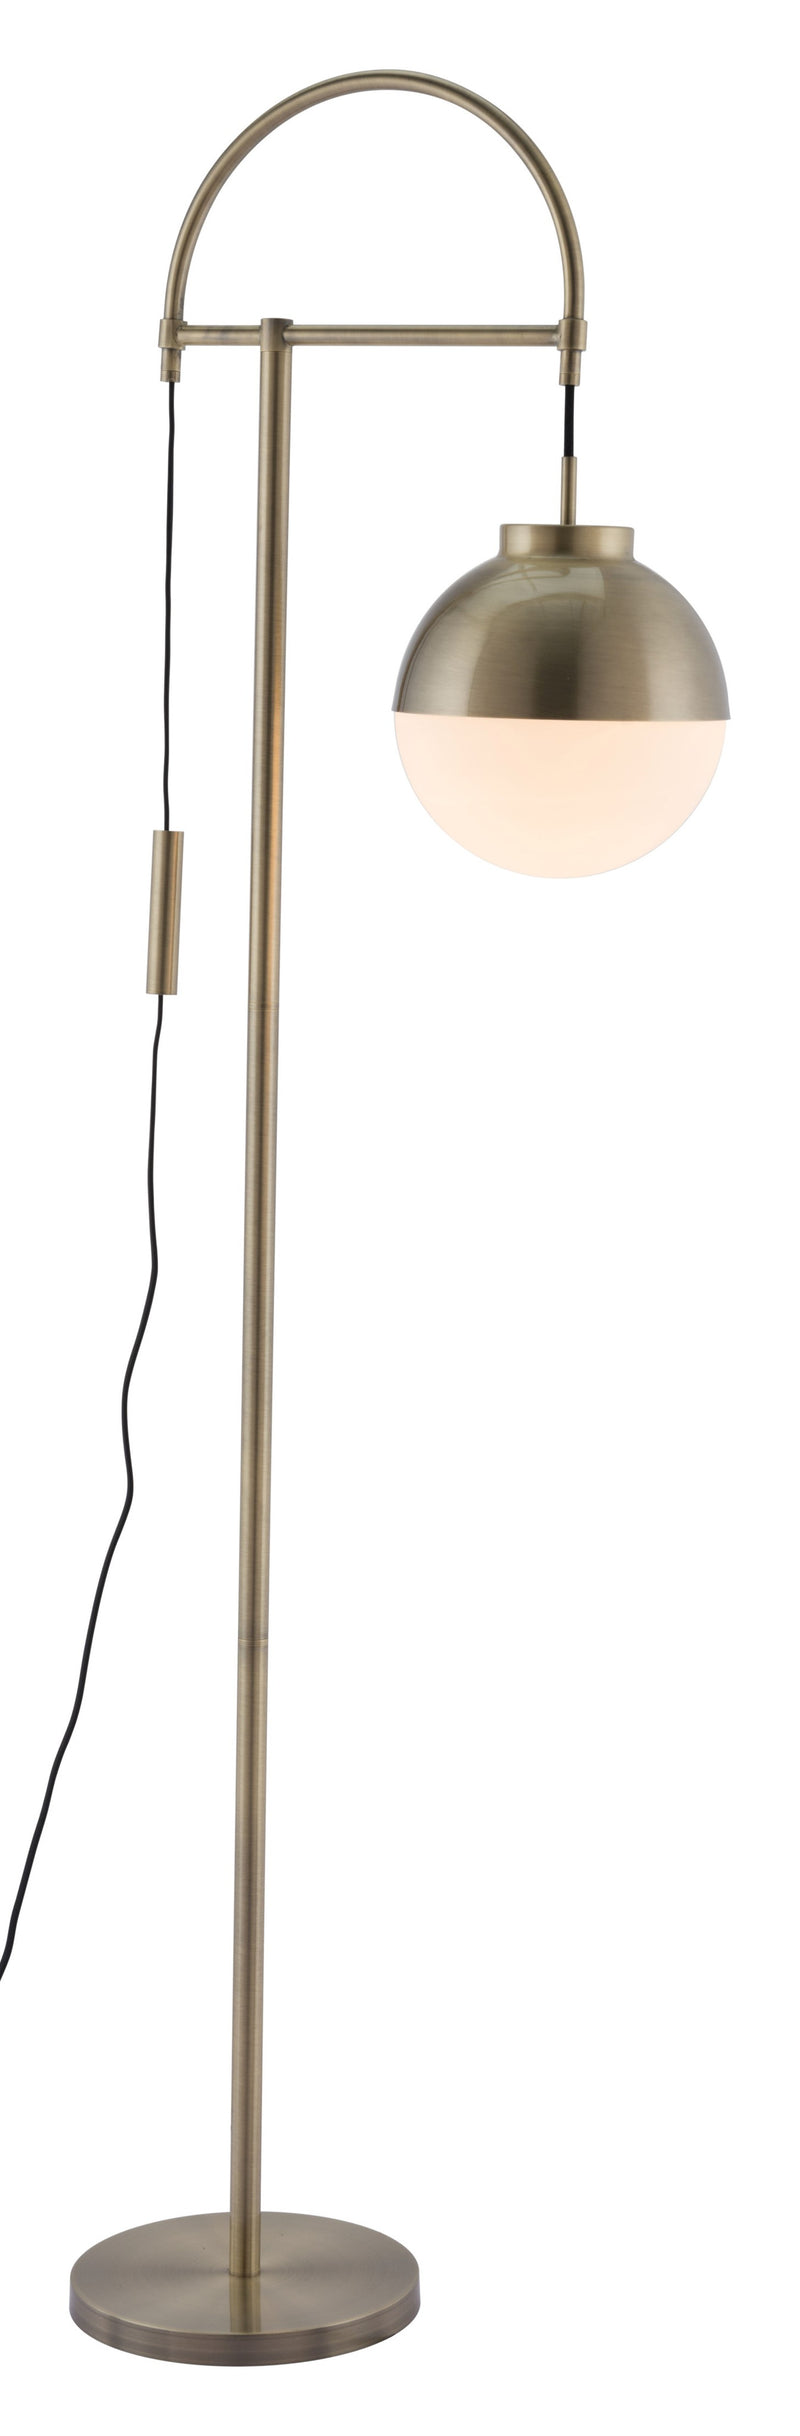 Waterloo Floor Lamp (White & Brushed Brass)